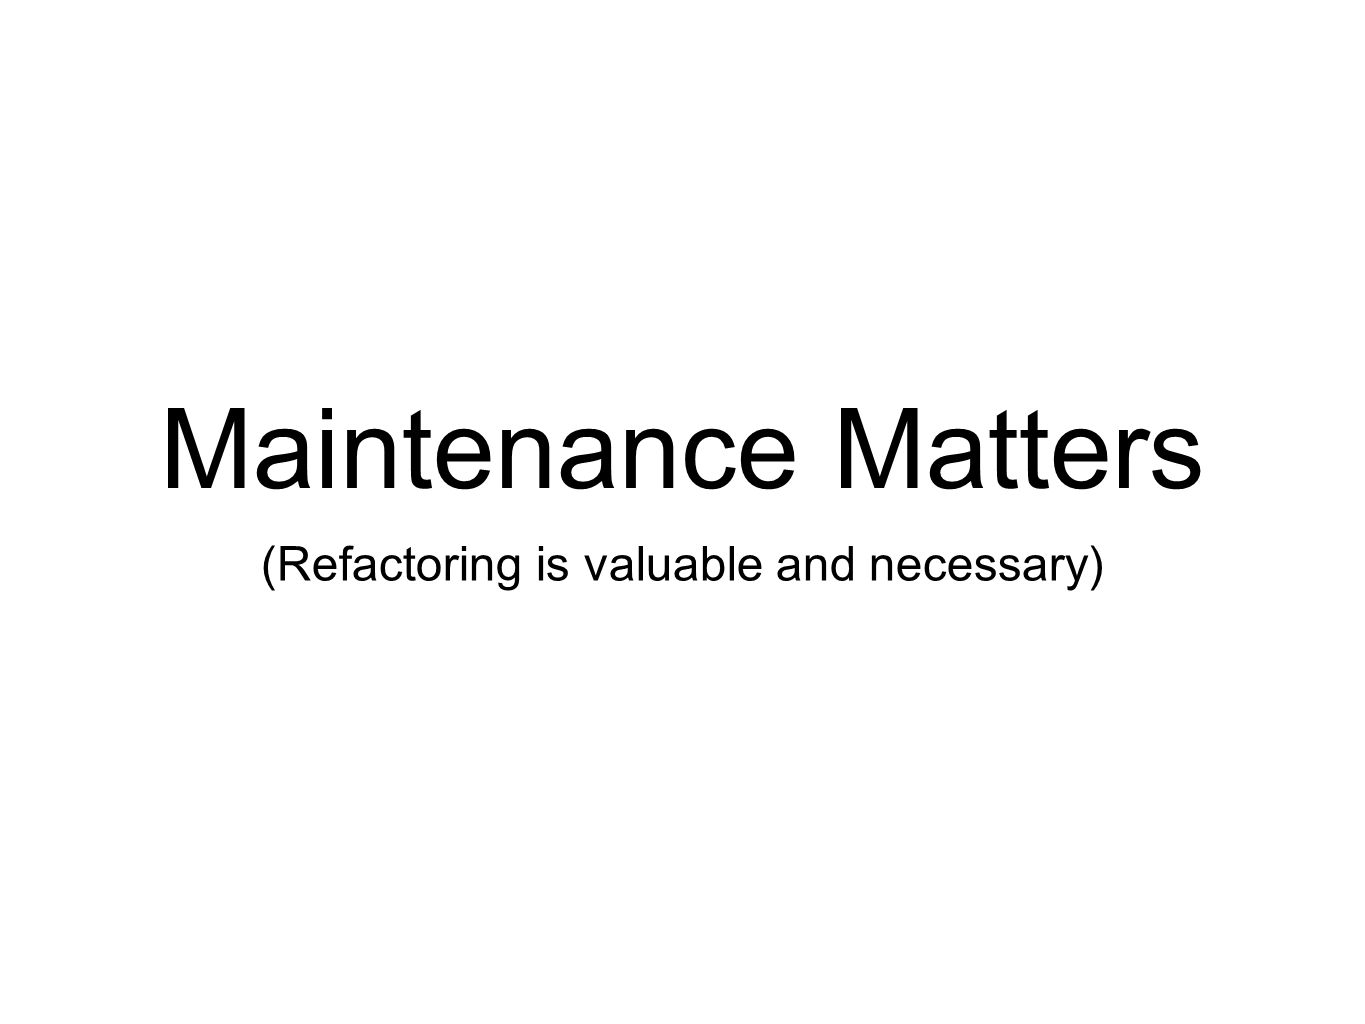 Maintenance Matters (Refactoring is valuable and necessary)